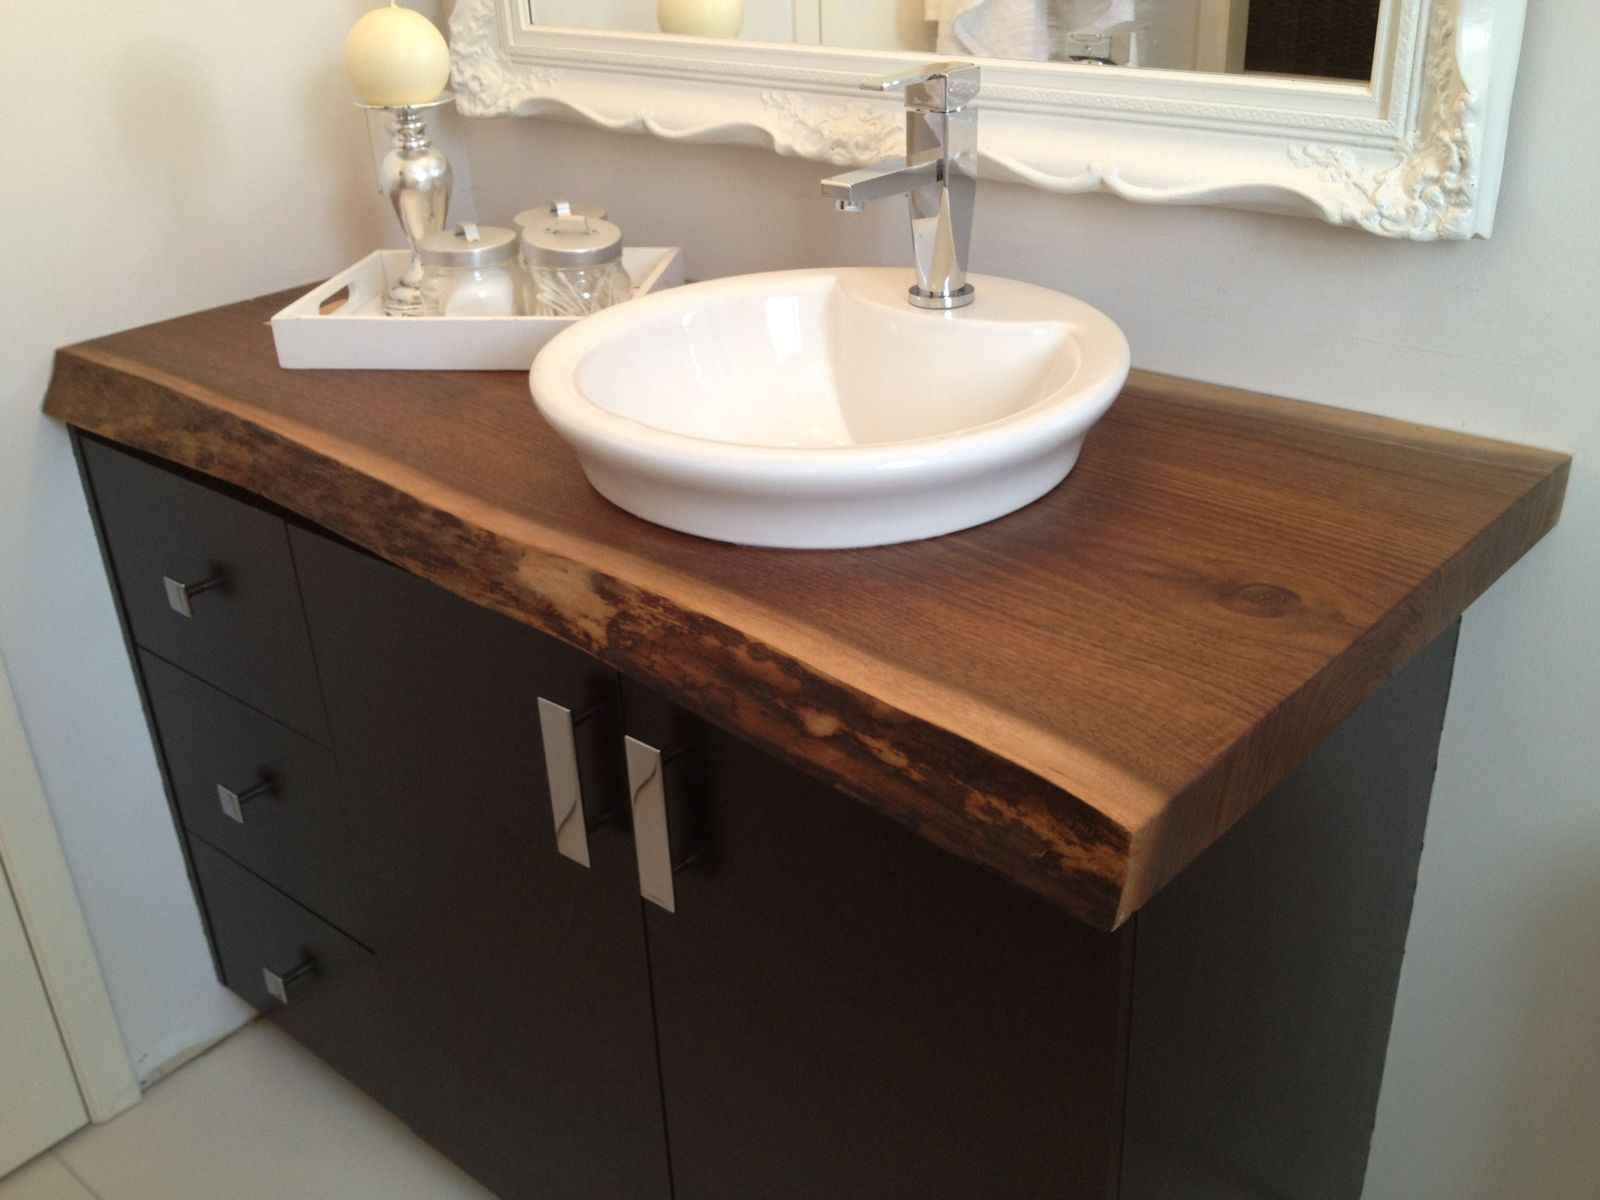 Bathroom Countertops Of Hand Made Live Edge Black Walnut Bathroom Countertop By